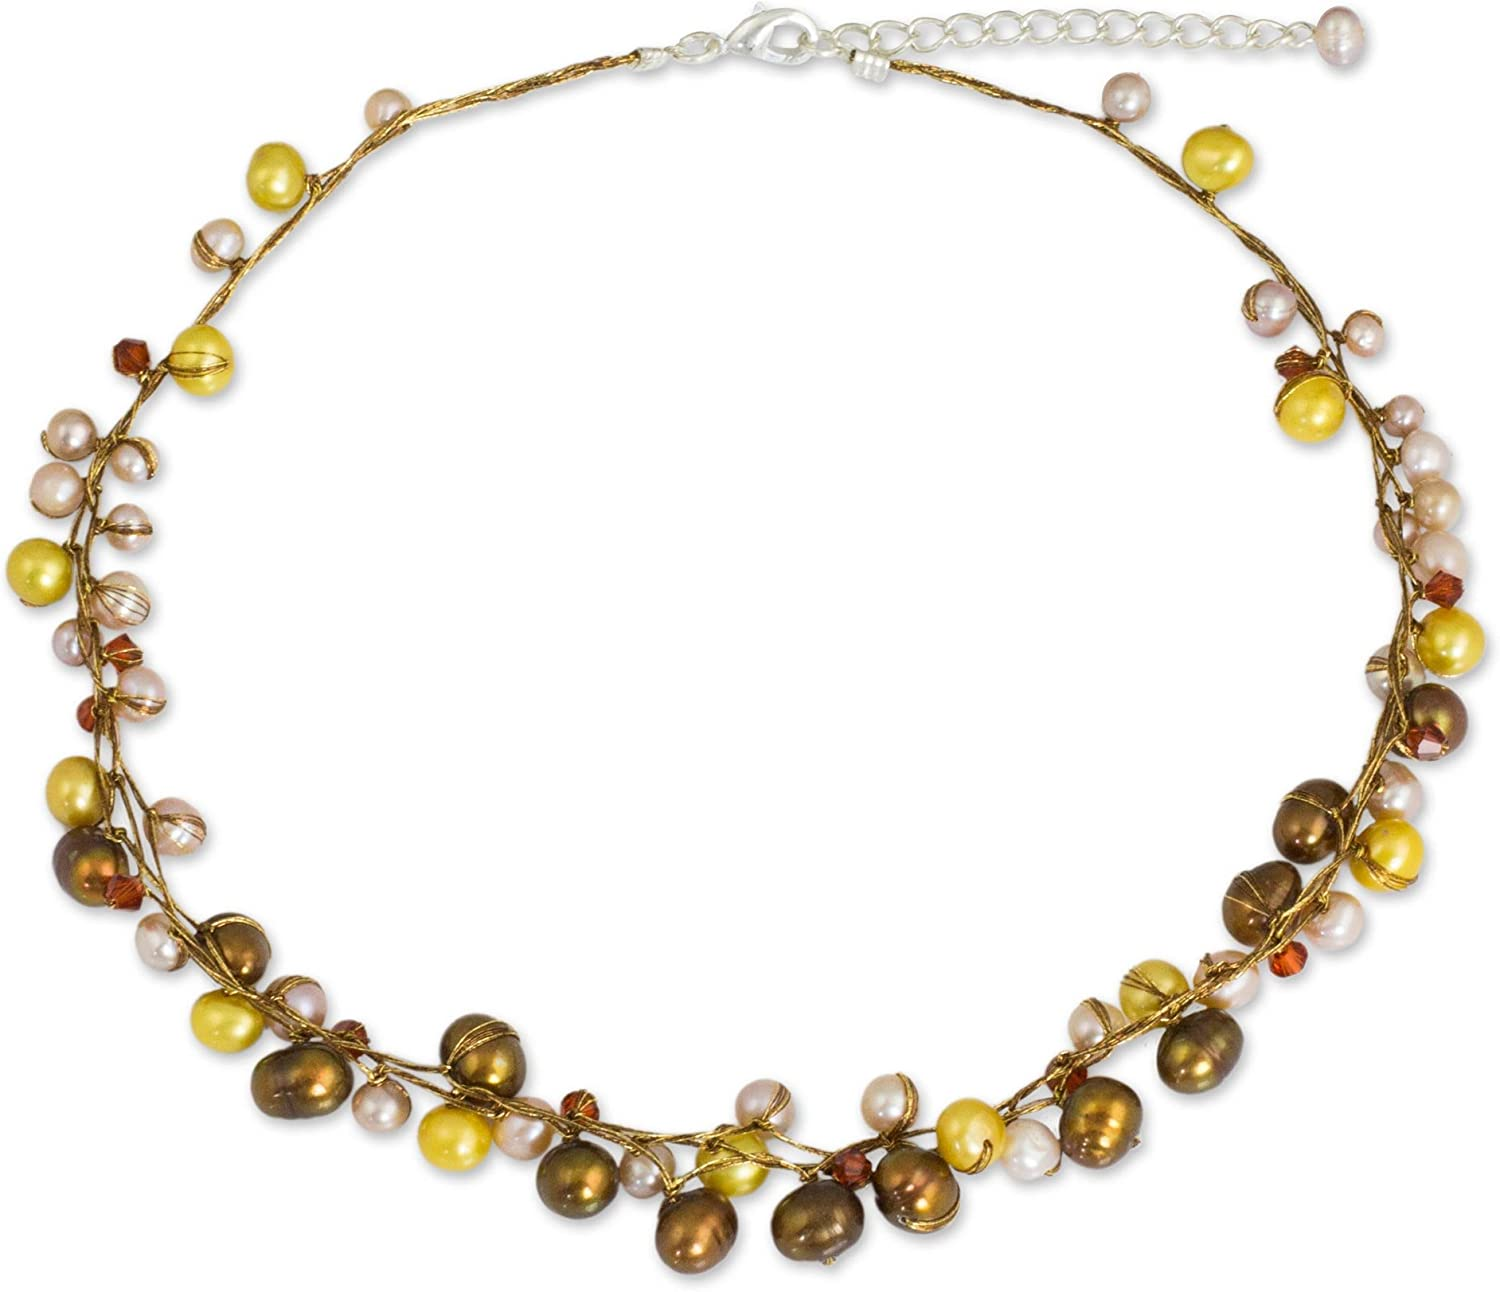 NOVICA Dyed Cultured Freshwater Pearl Strand Necklace with Stainless Steel Extender, River of Gold'